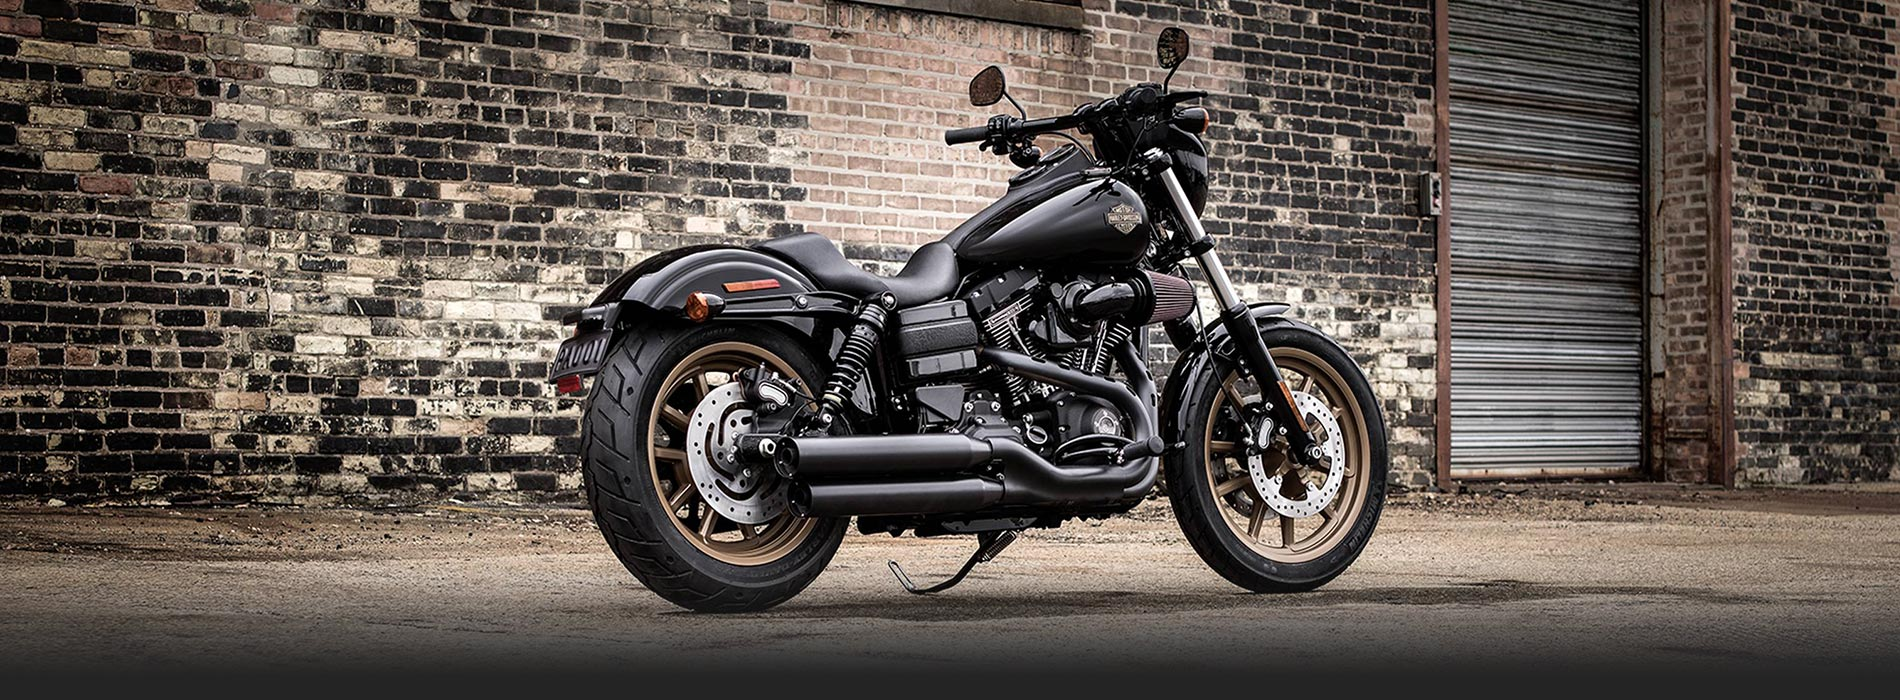 16-hd-s-series-low-rider-s-1